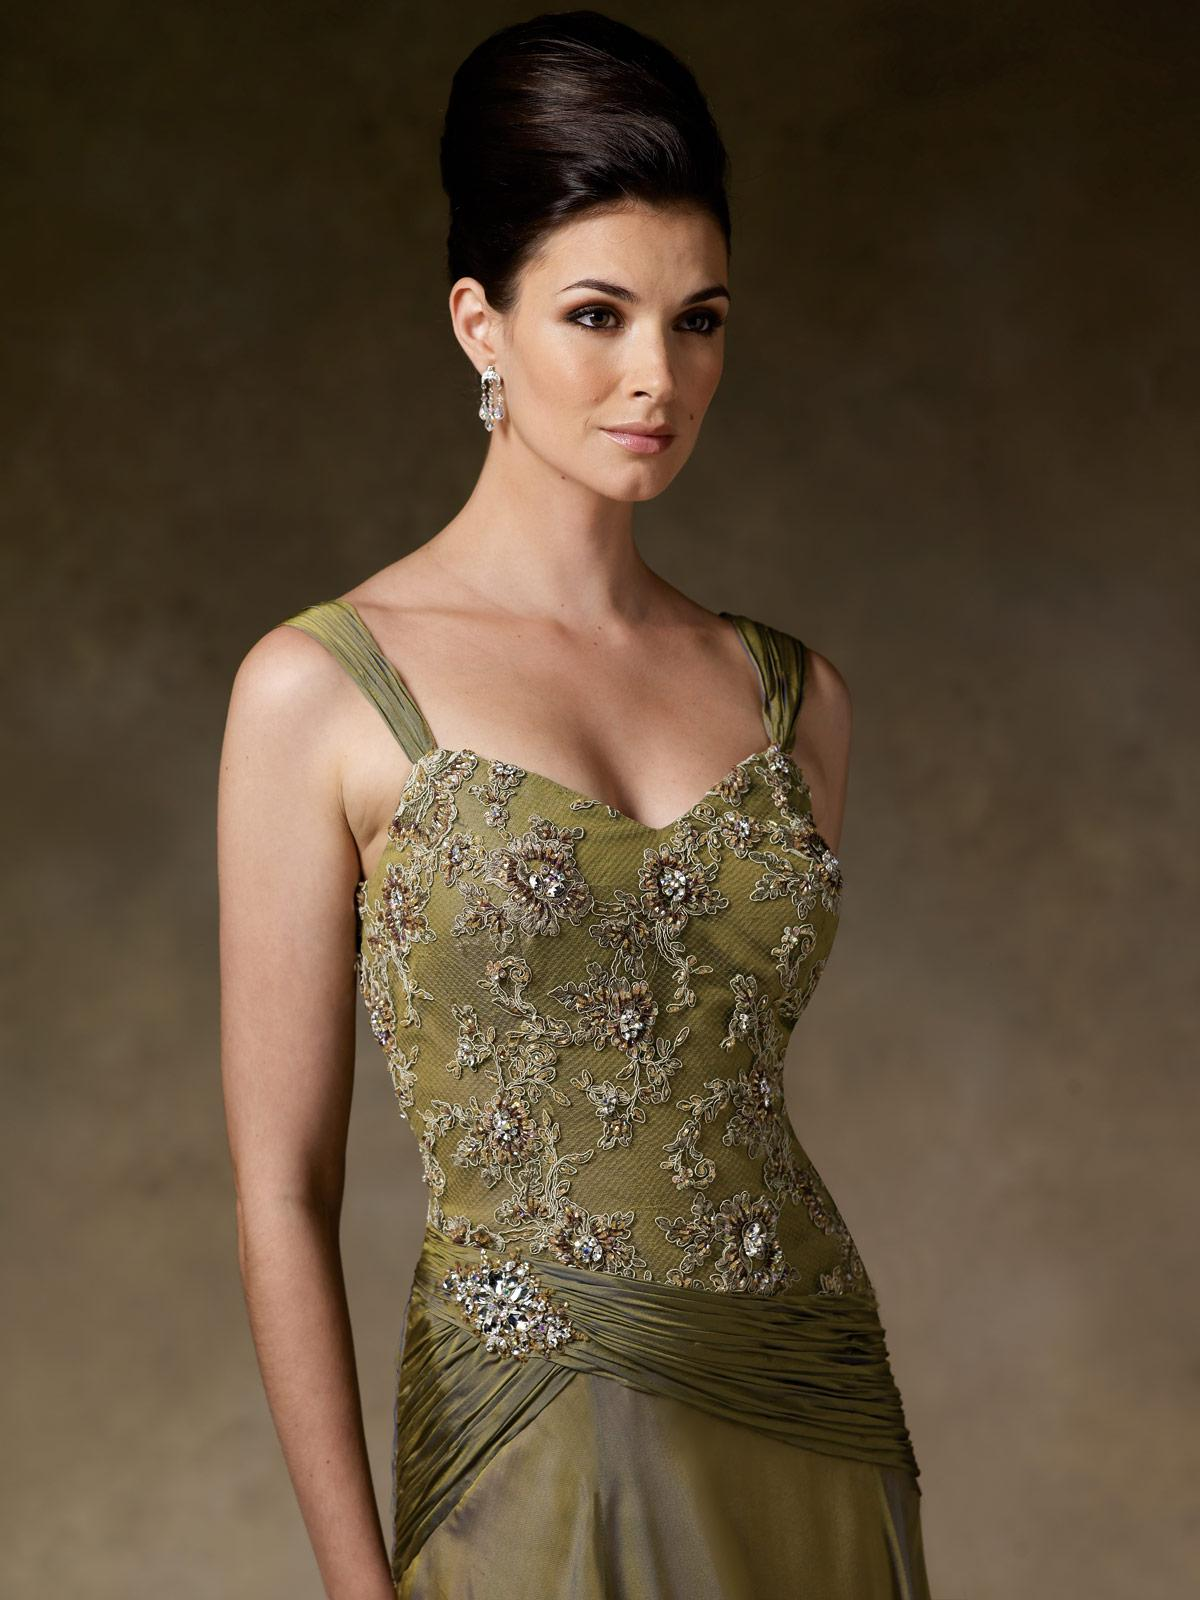 Luxurious Wedding Gowns - If